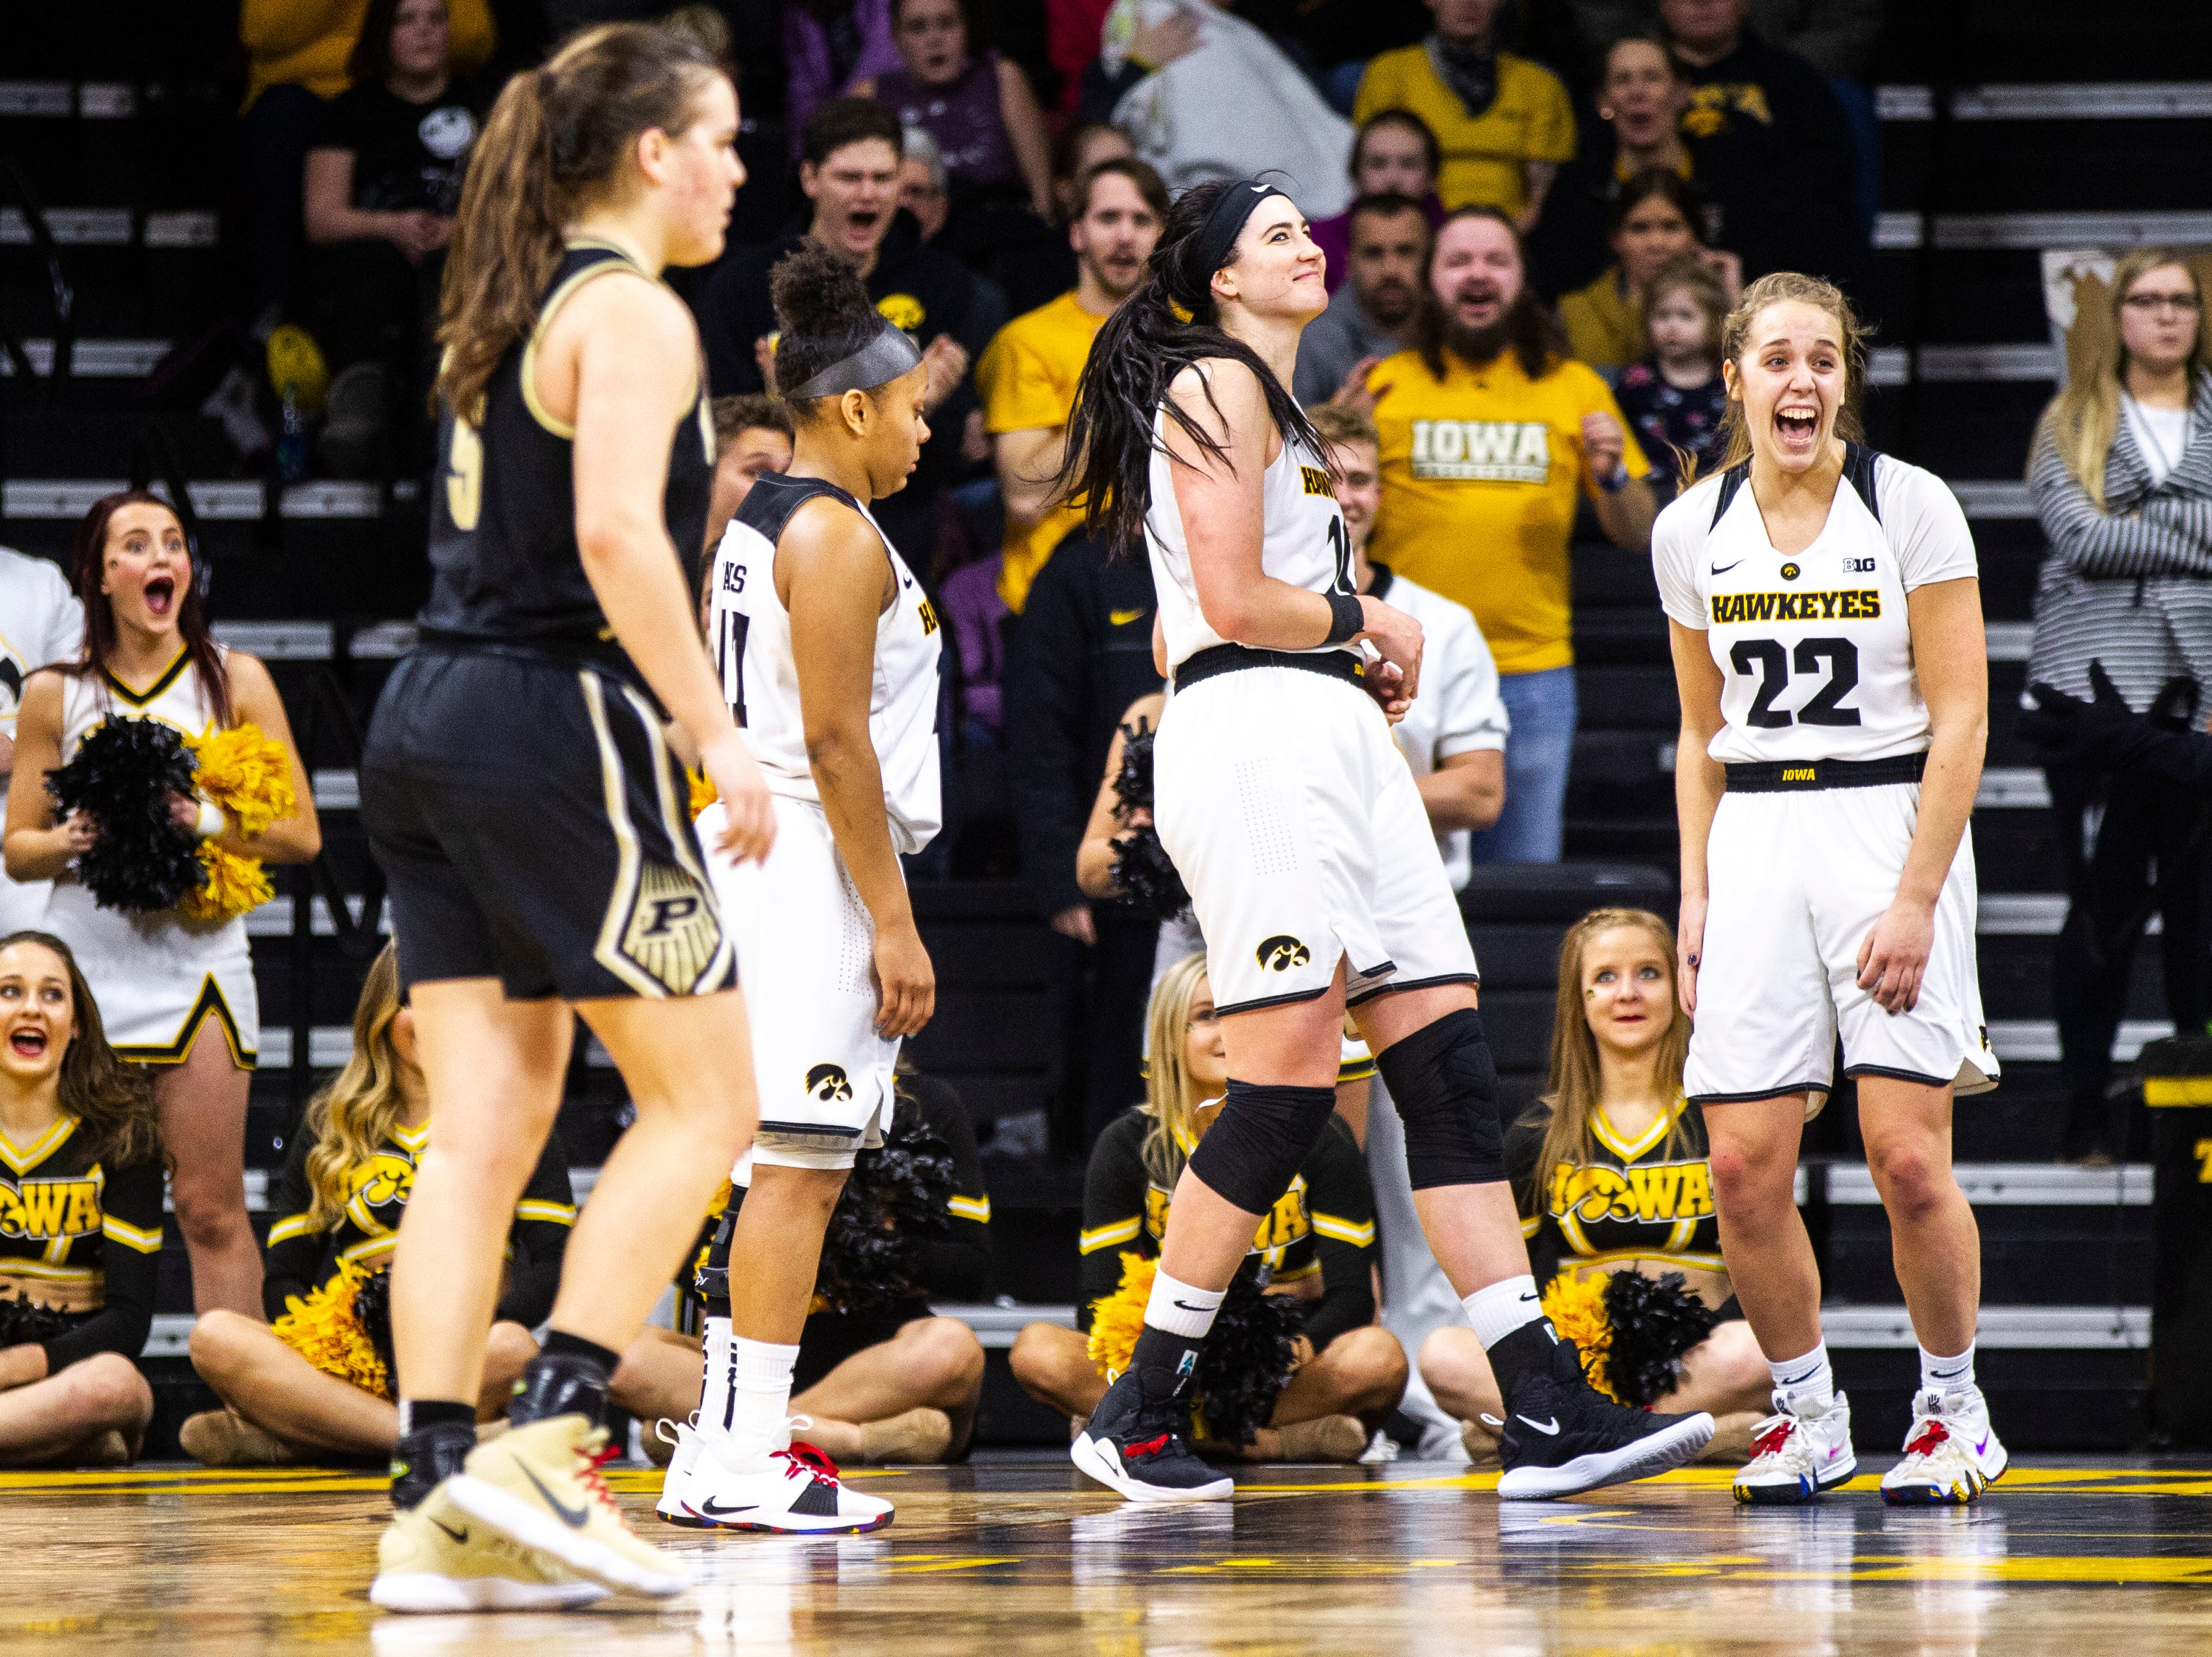 Iowa guard Kathleen Doyle (22) laughs after Iowa center Megan Gustafson (10) blocked a shot during a NCAA Big Ten Conference women's basketball game on Sunday, Jan. 27, 2019, at Carver-Hawkeye Arena in Iowa City, Iowa.